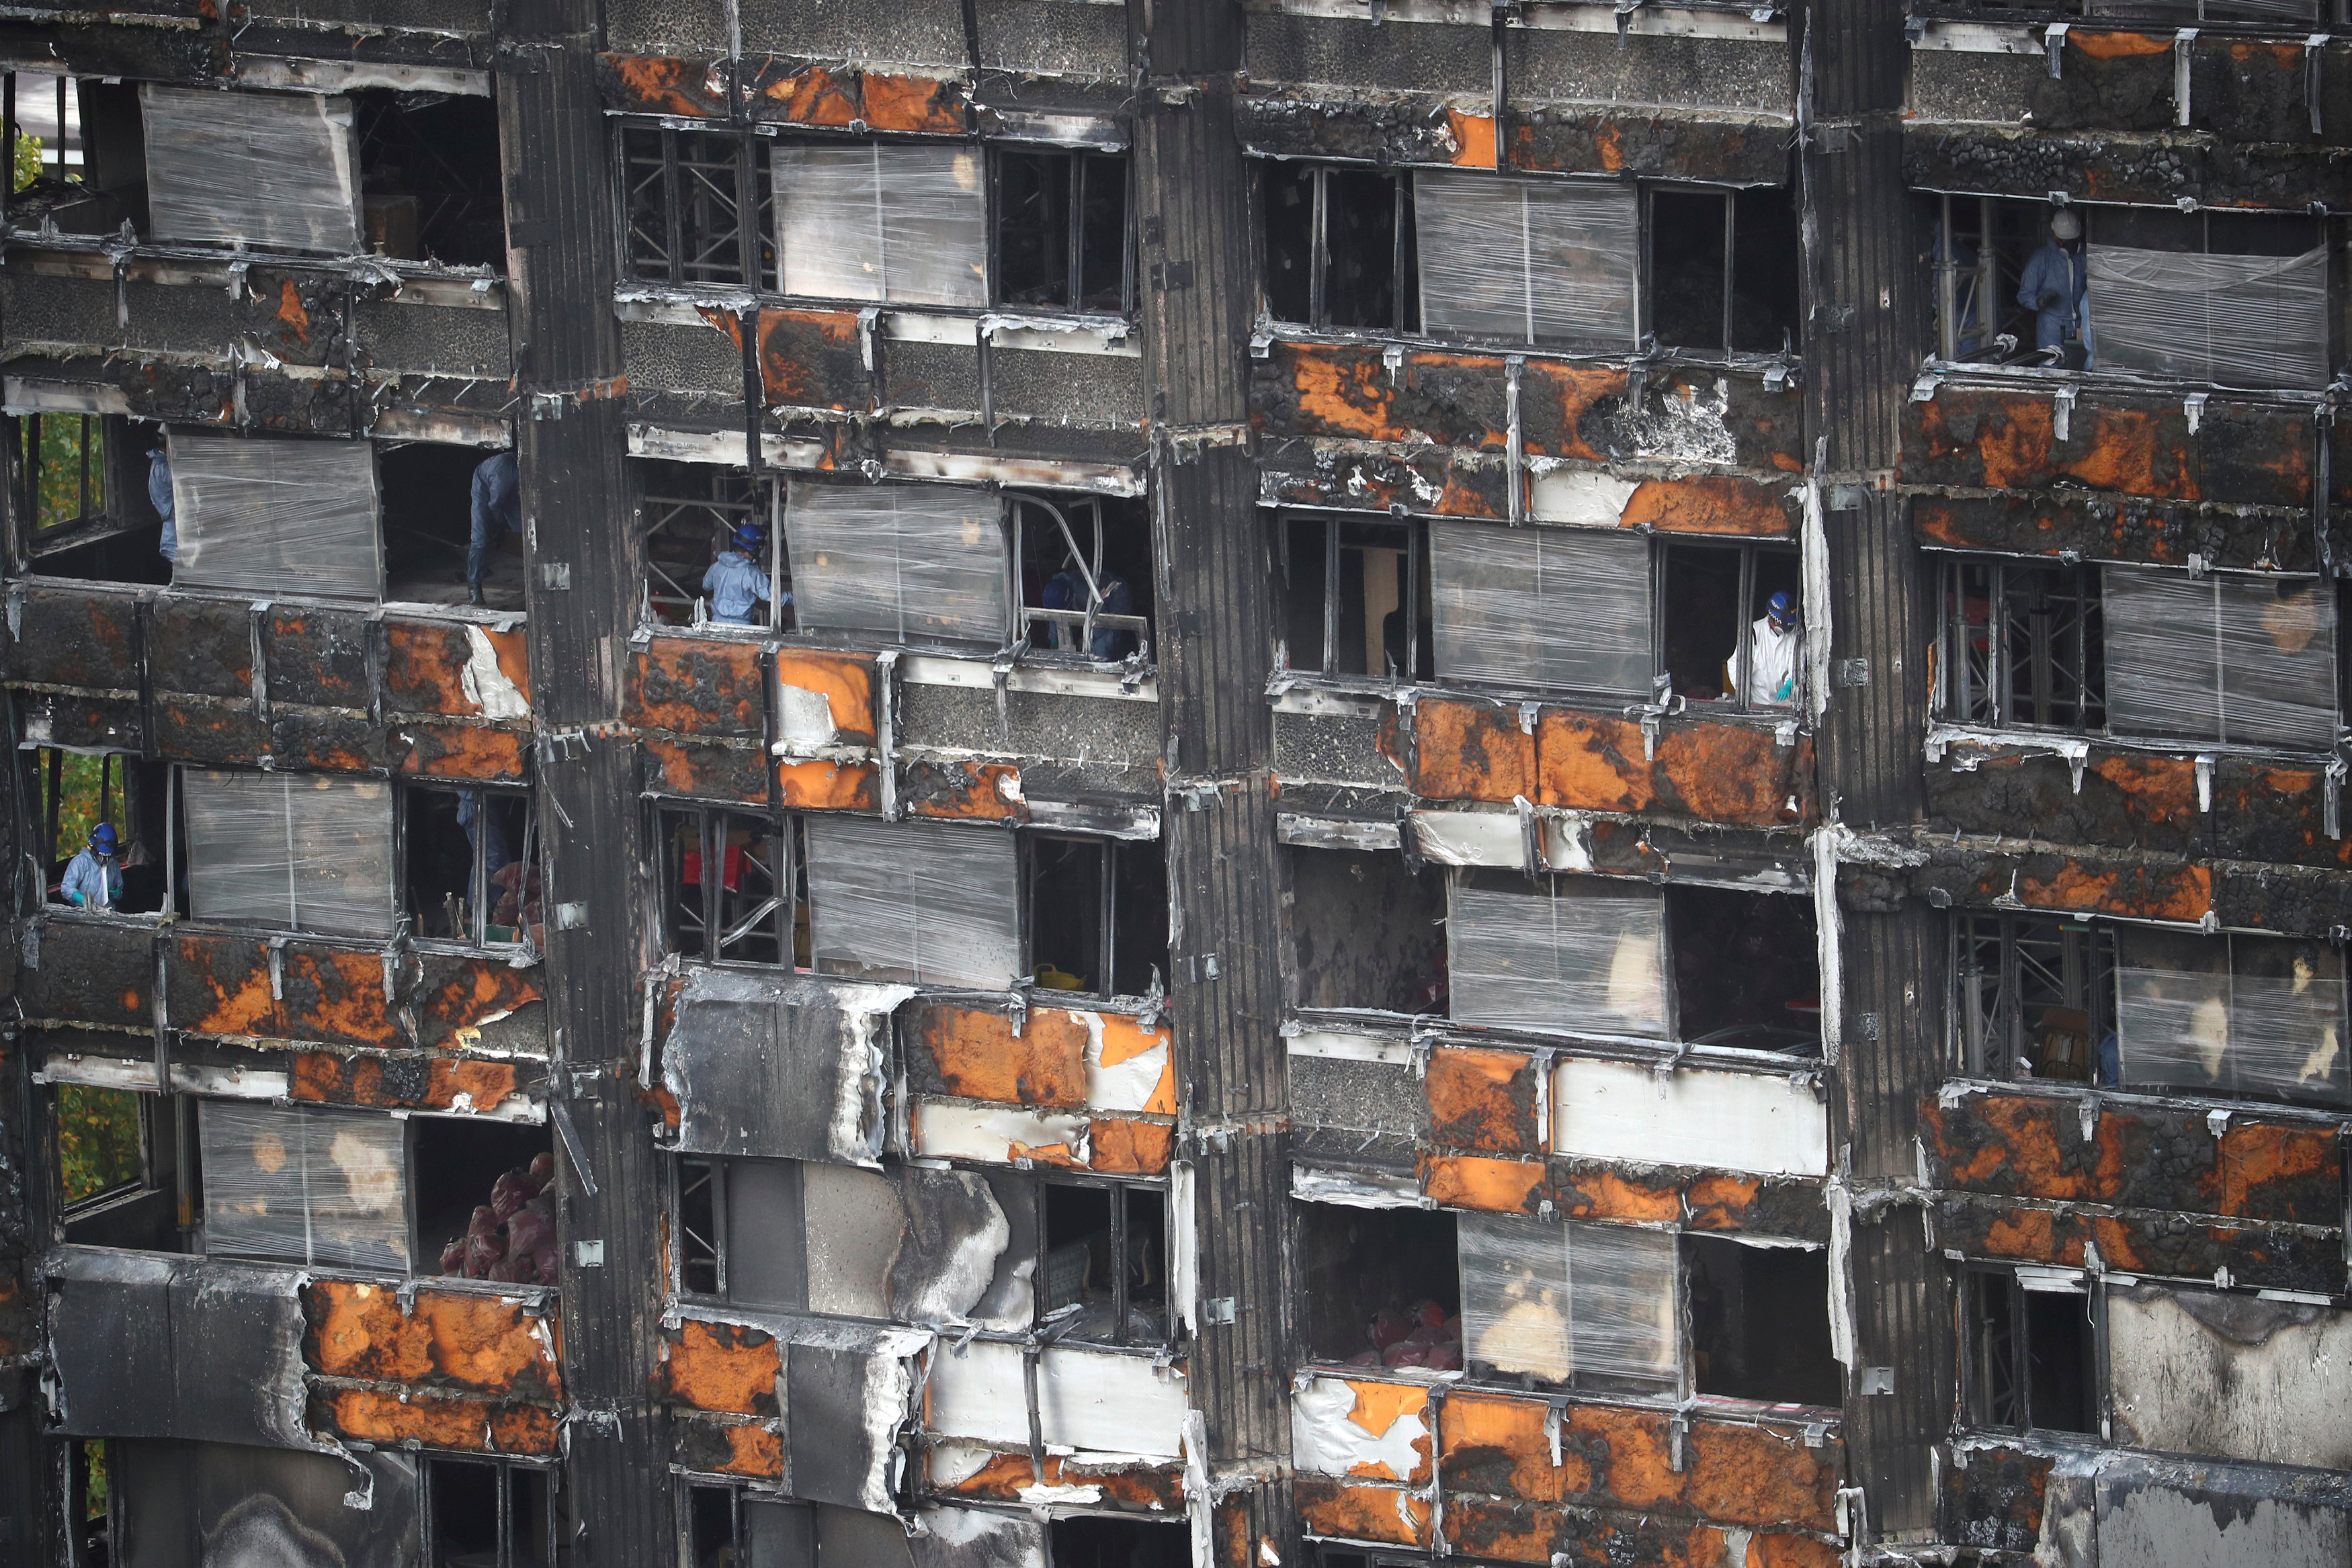 FILE PHOTO: Workers stand inside the burnt out remains of the Grenfell tower in London, Britain, October 16, 2017. REUTERS/Hannah Mckay/File Photo